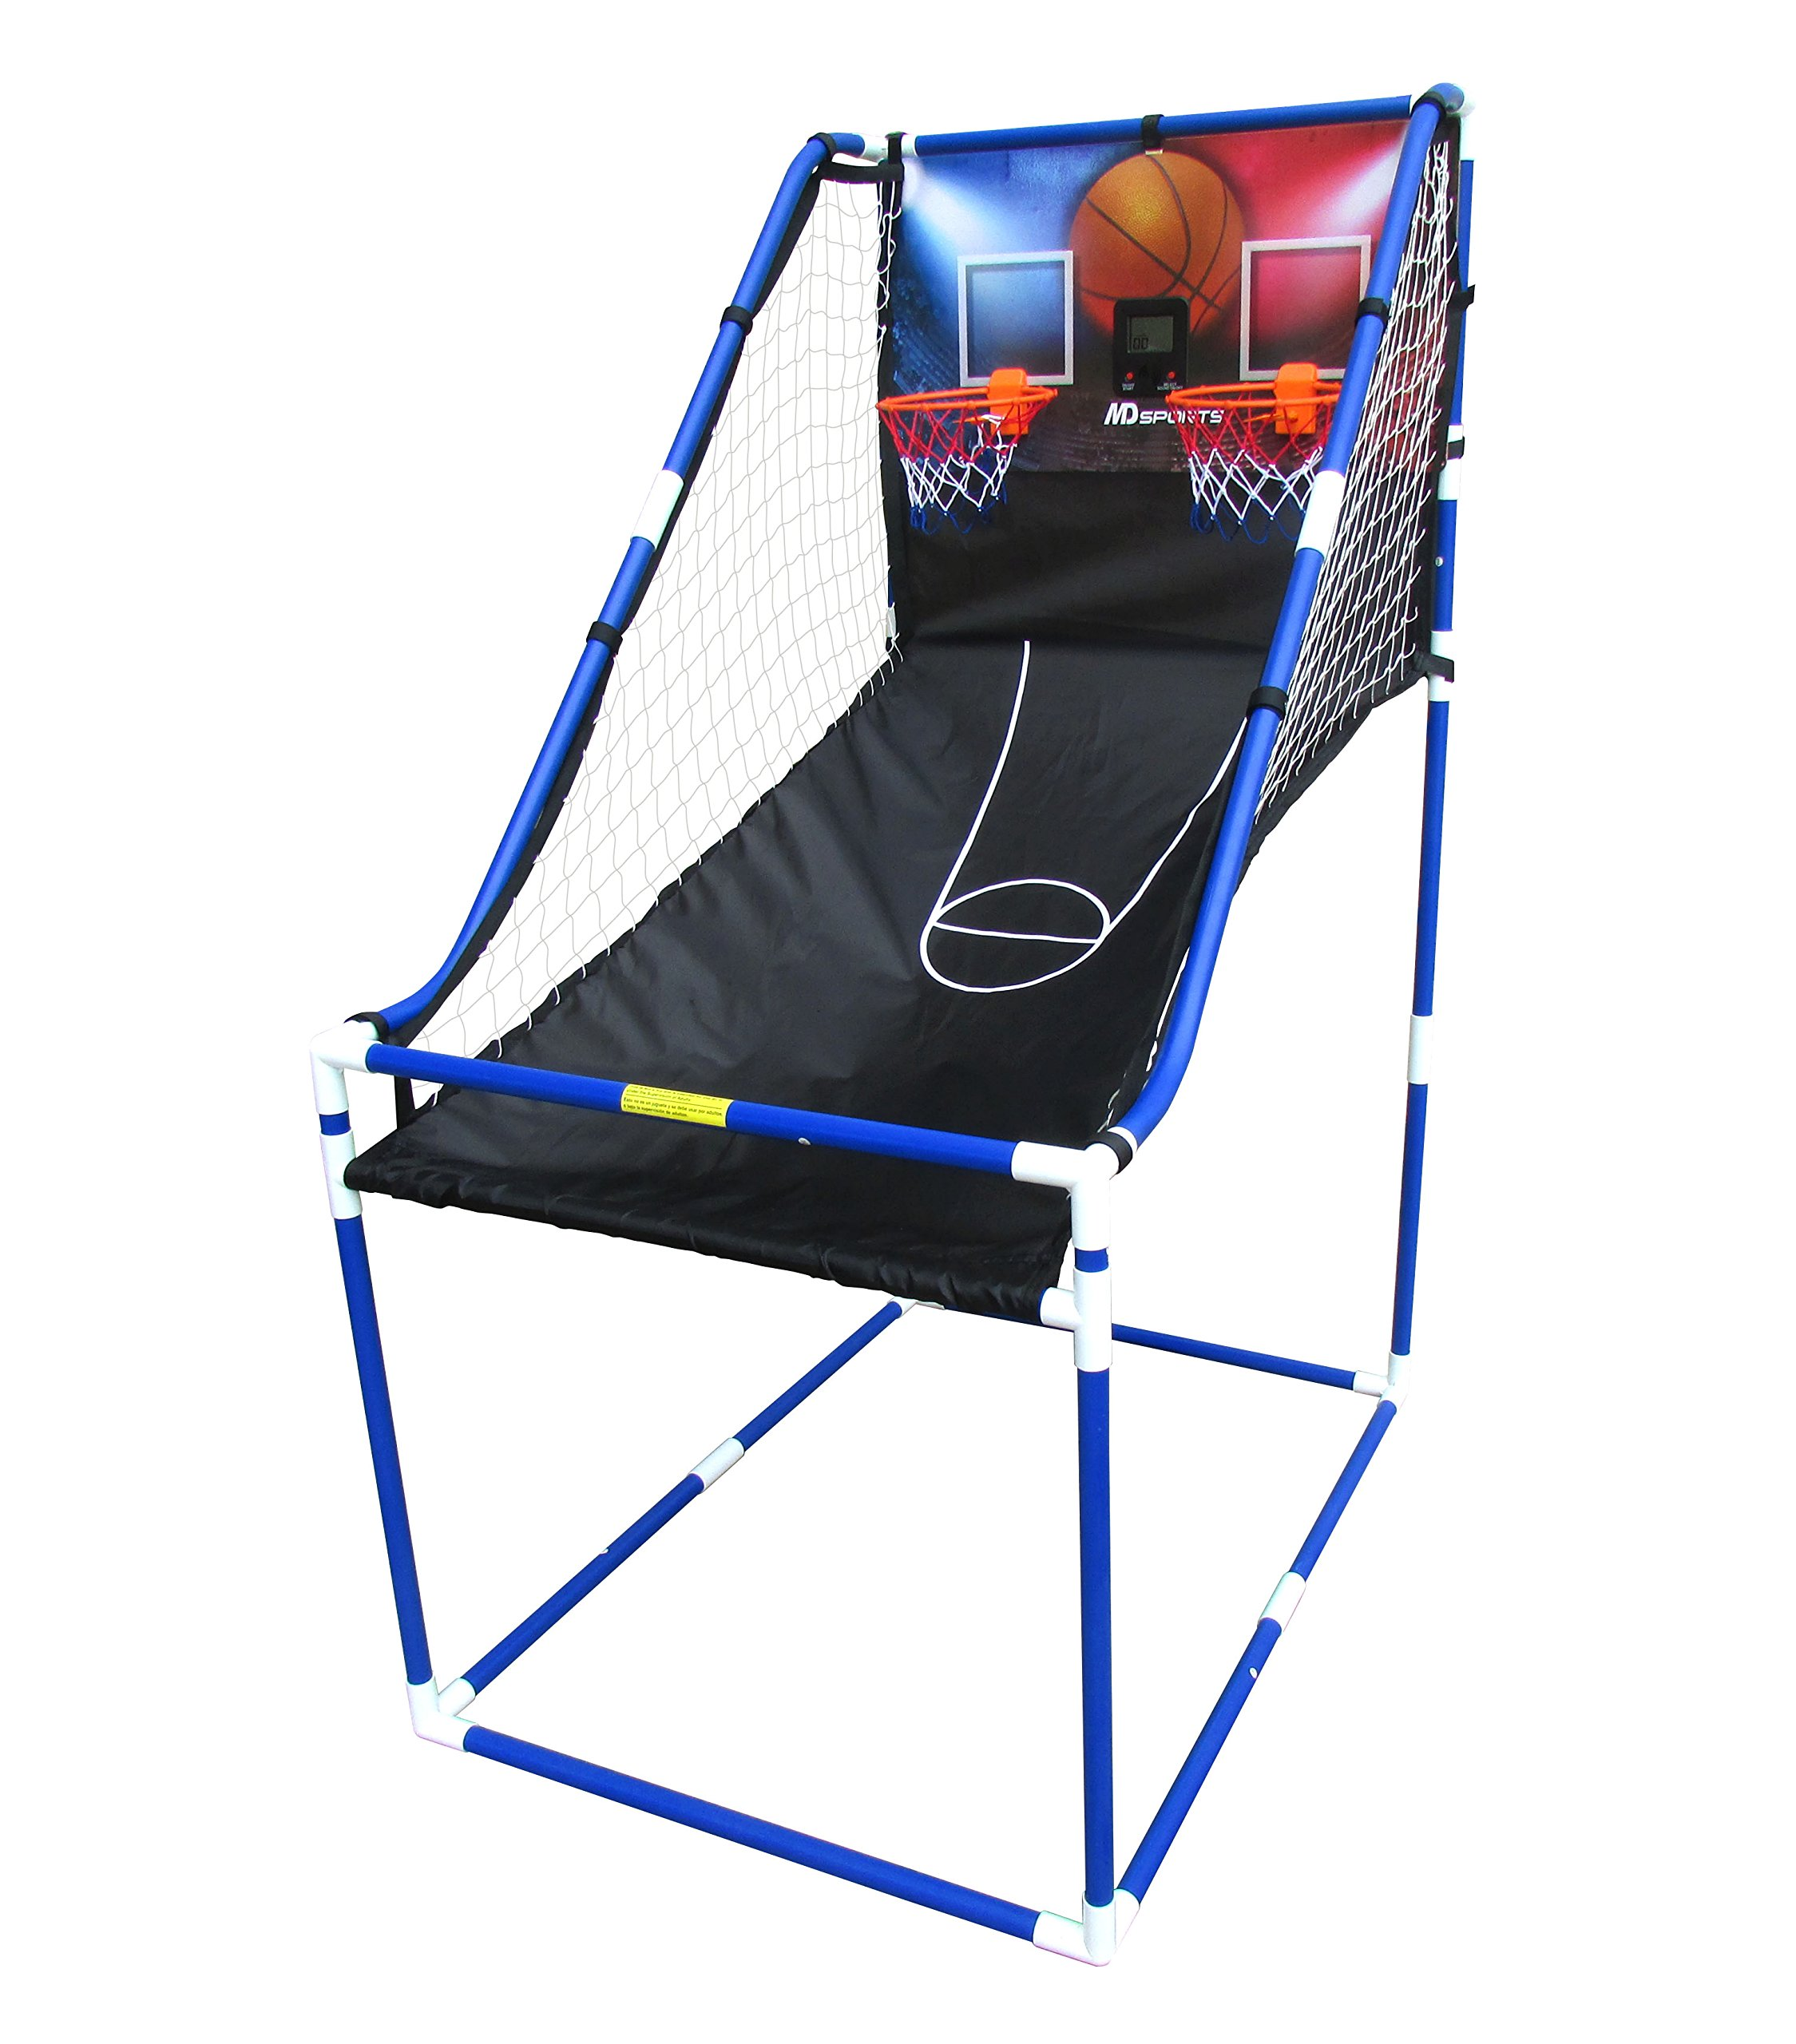 MD Sports 2 Player Junior Arcade Basketball by MD Sports